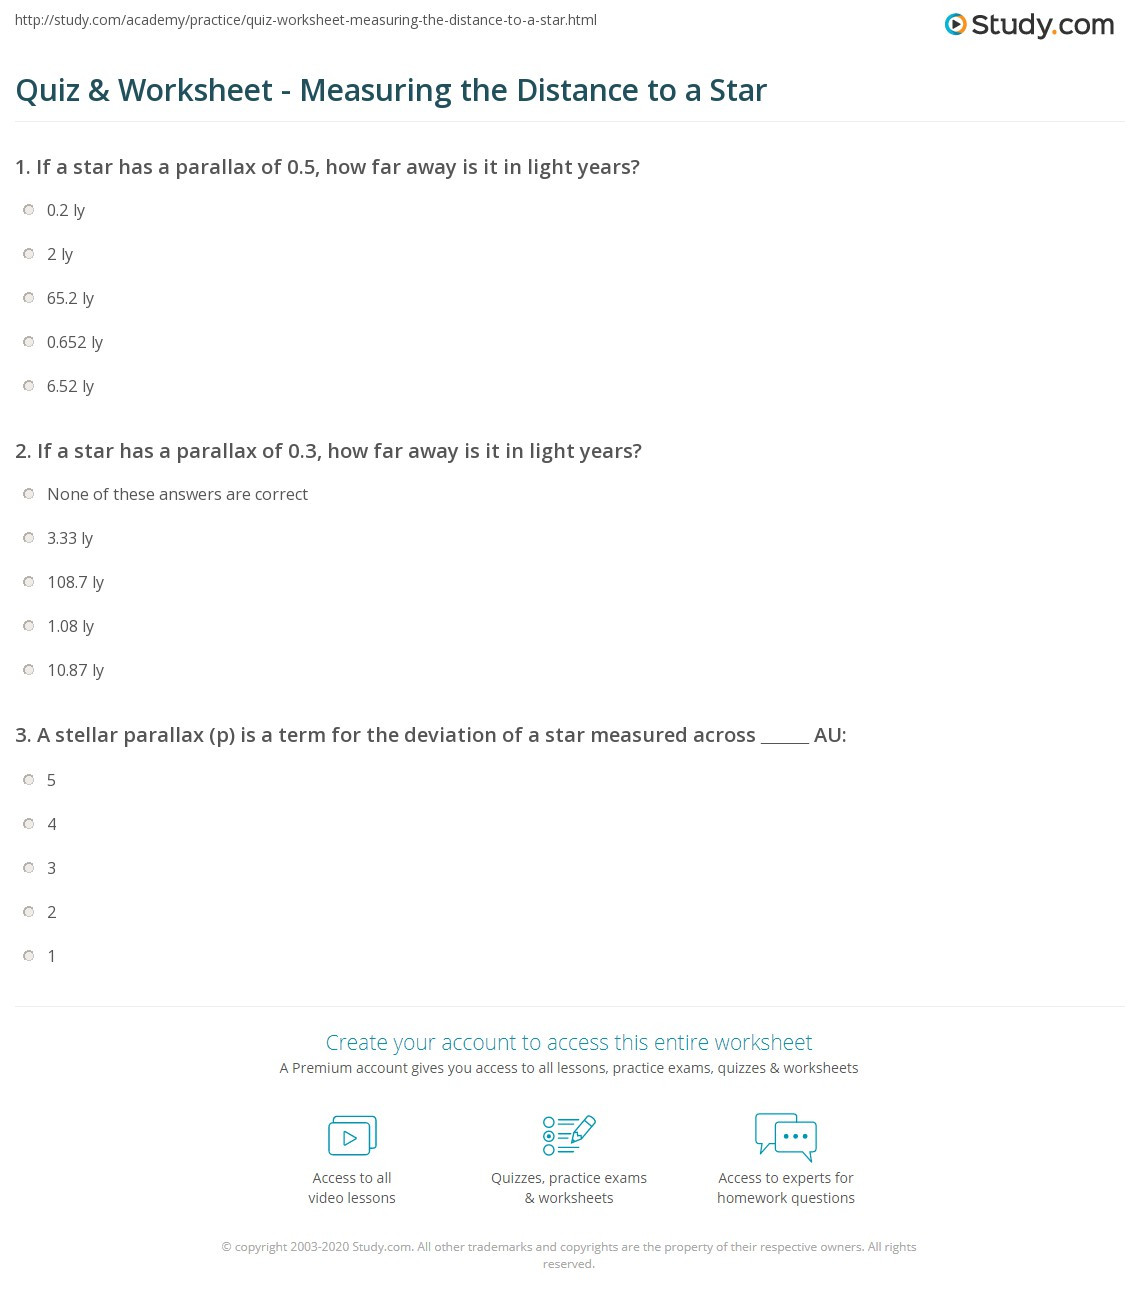 5th Grade Measurement Worksheet Measuring Basics Worksheet Answers Promotiontablecovers